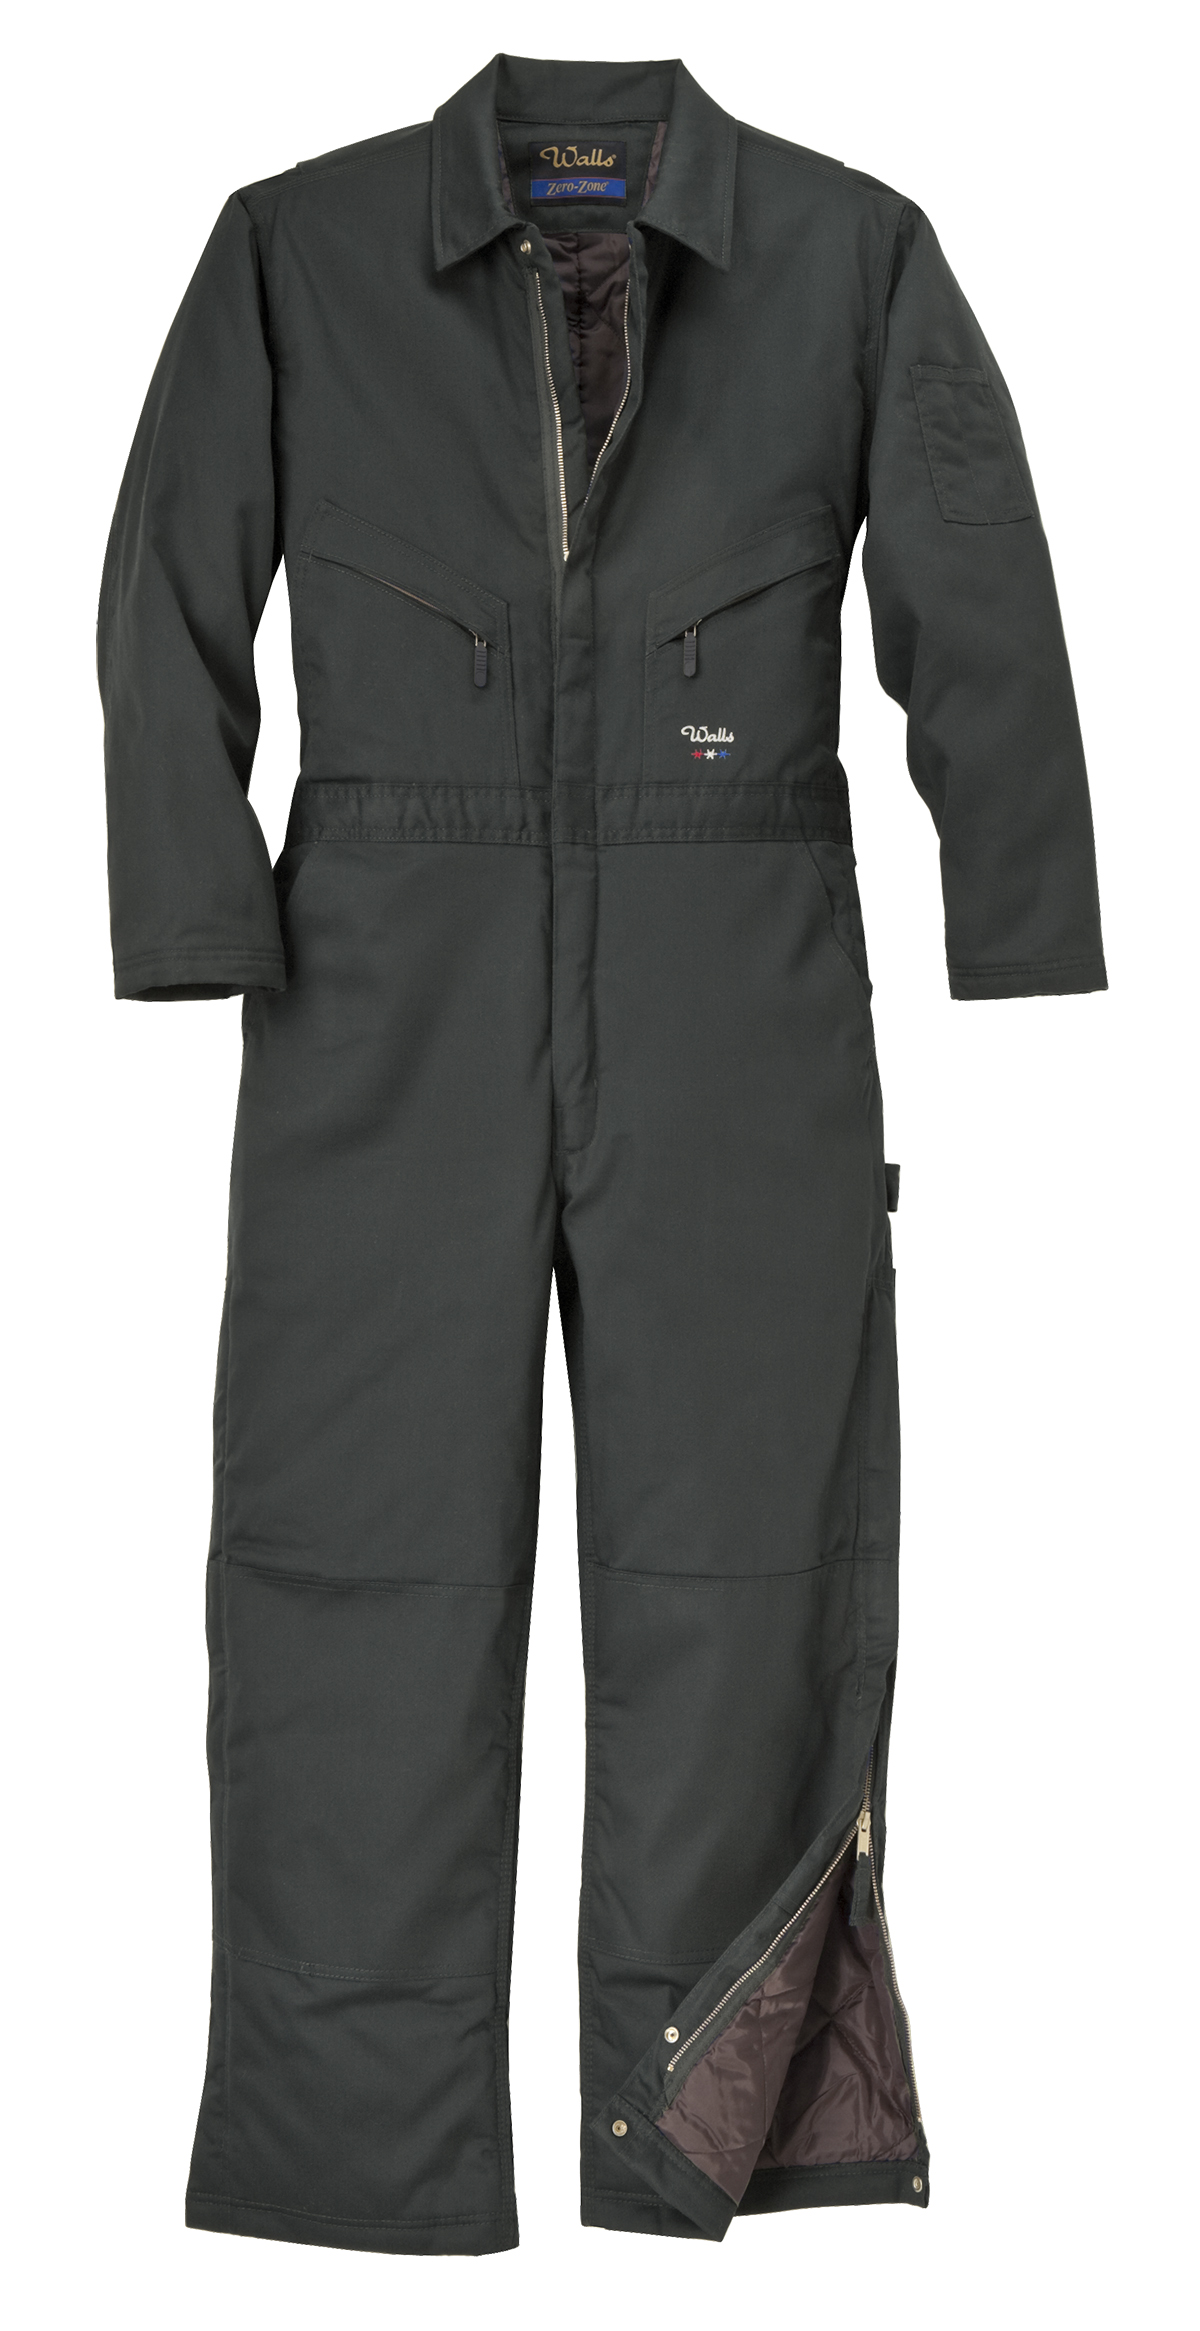 Walls Men's Zero Zone Insulated Hip Zip Duck Coveralls at Sears.com